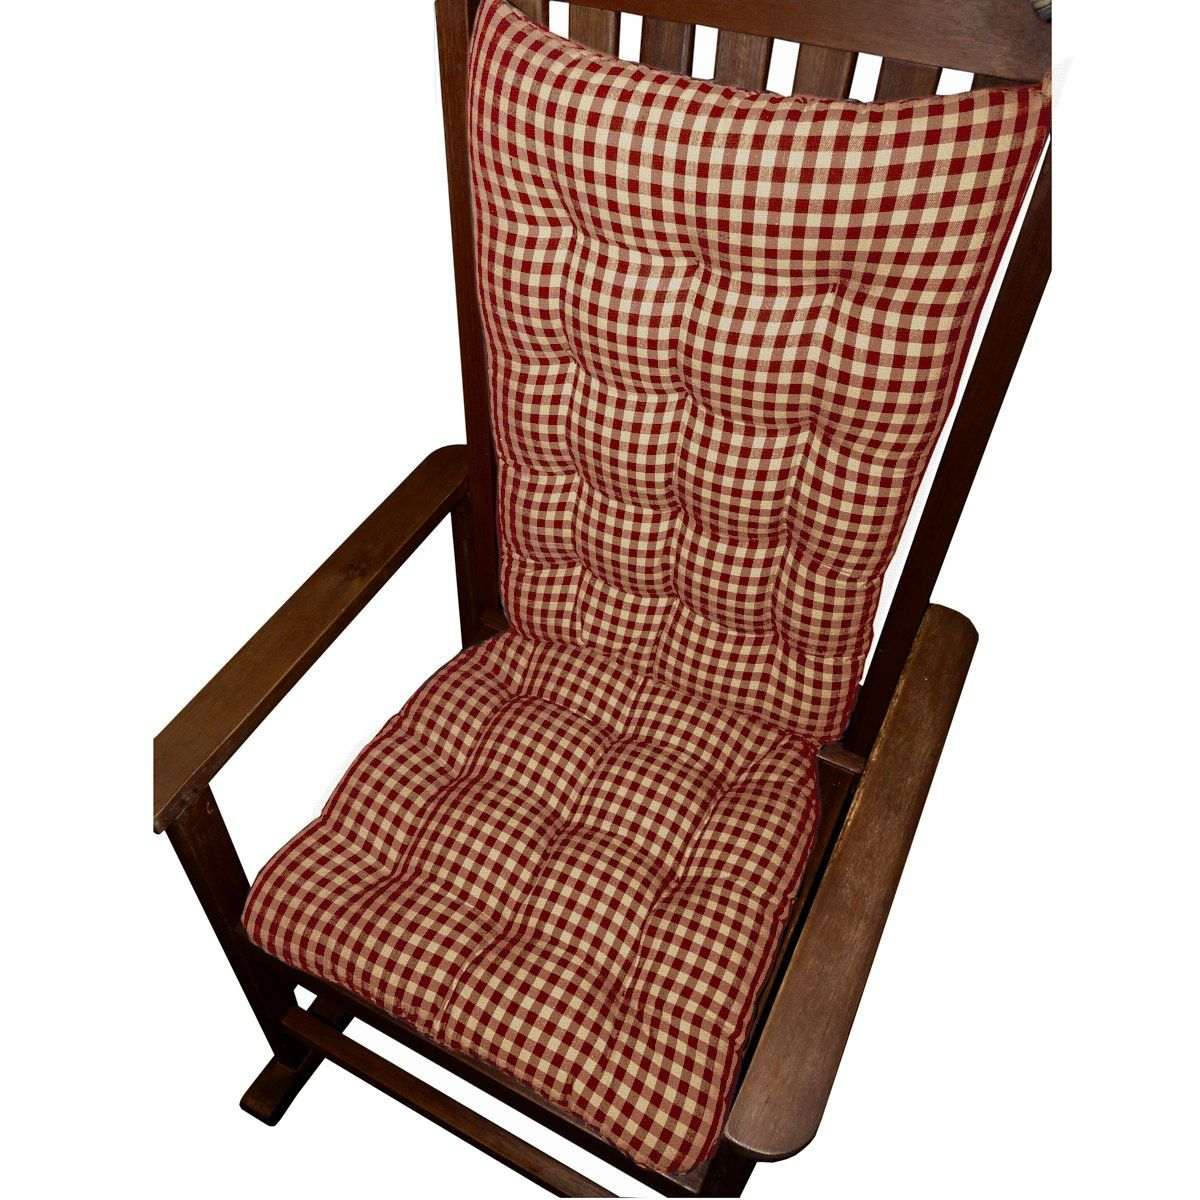 Rocking Chair Cushions Checkers Red and Tan Size Standard